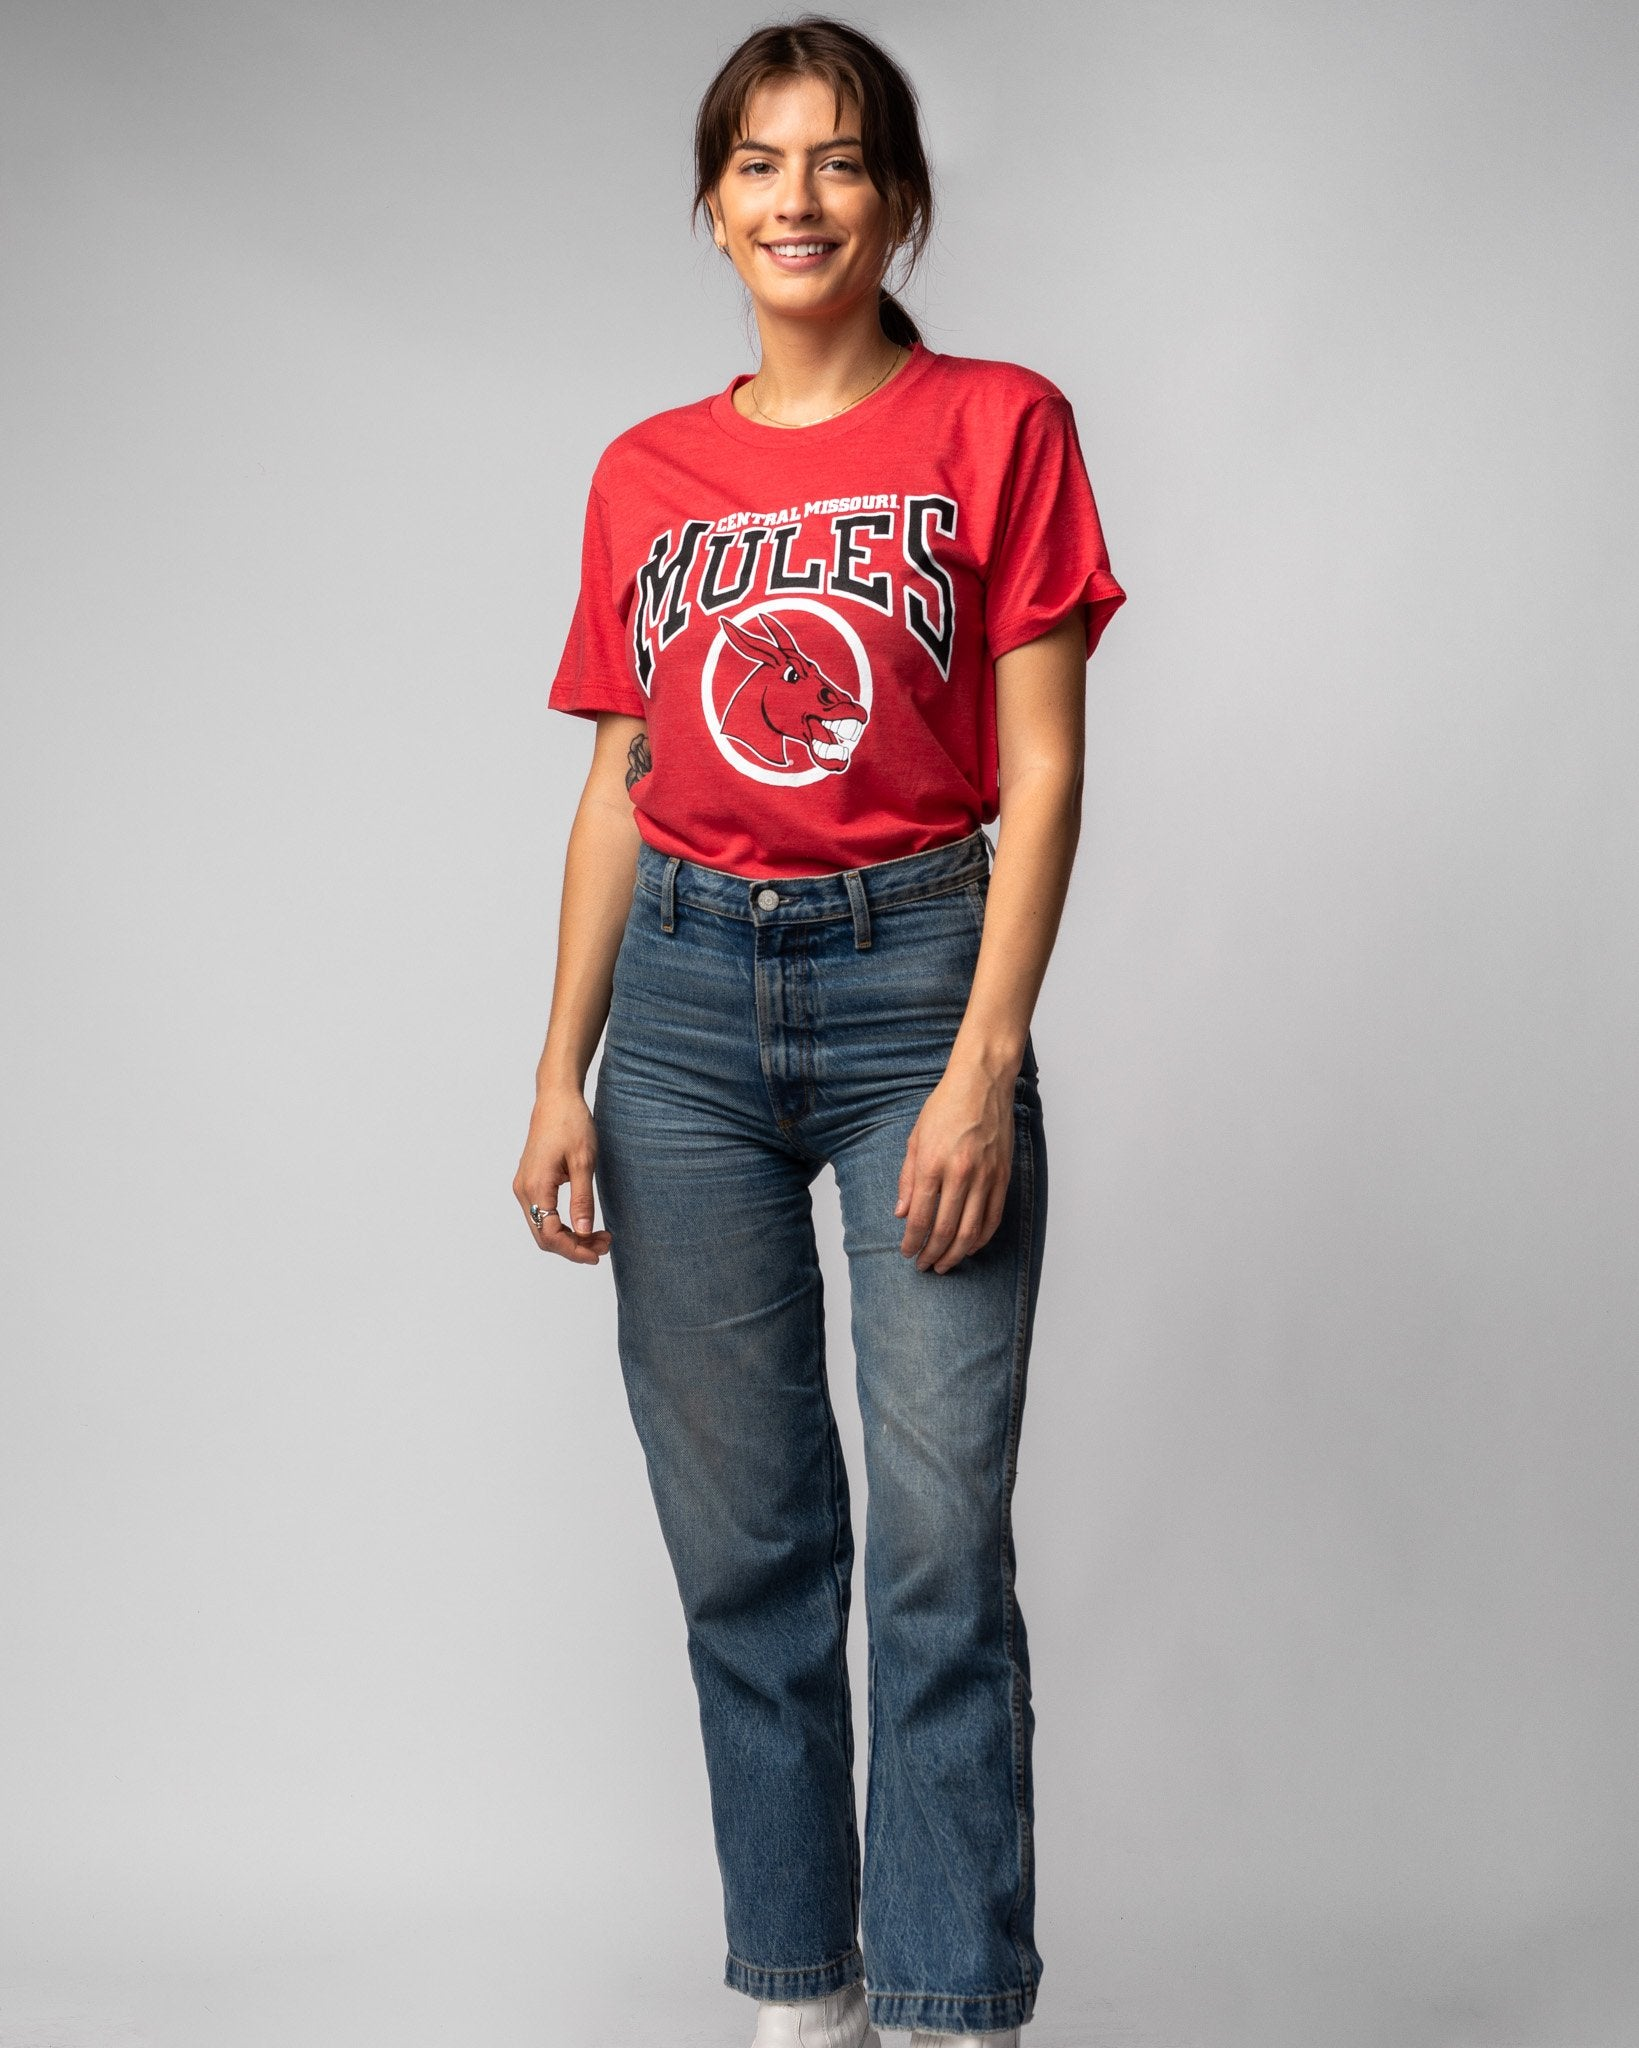 Red University Of Central Missouri Mules Vintage T-Shirt Wide